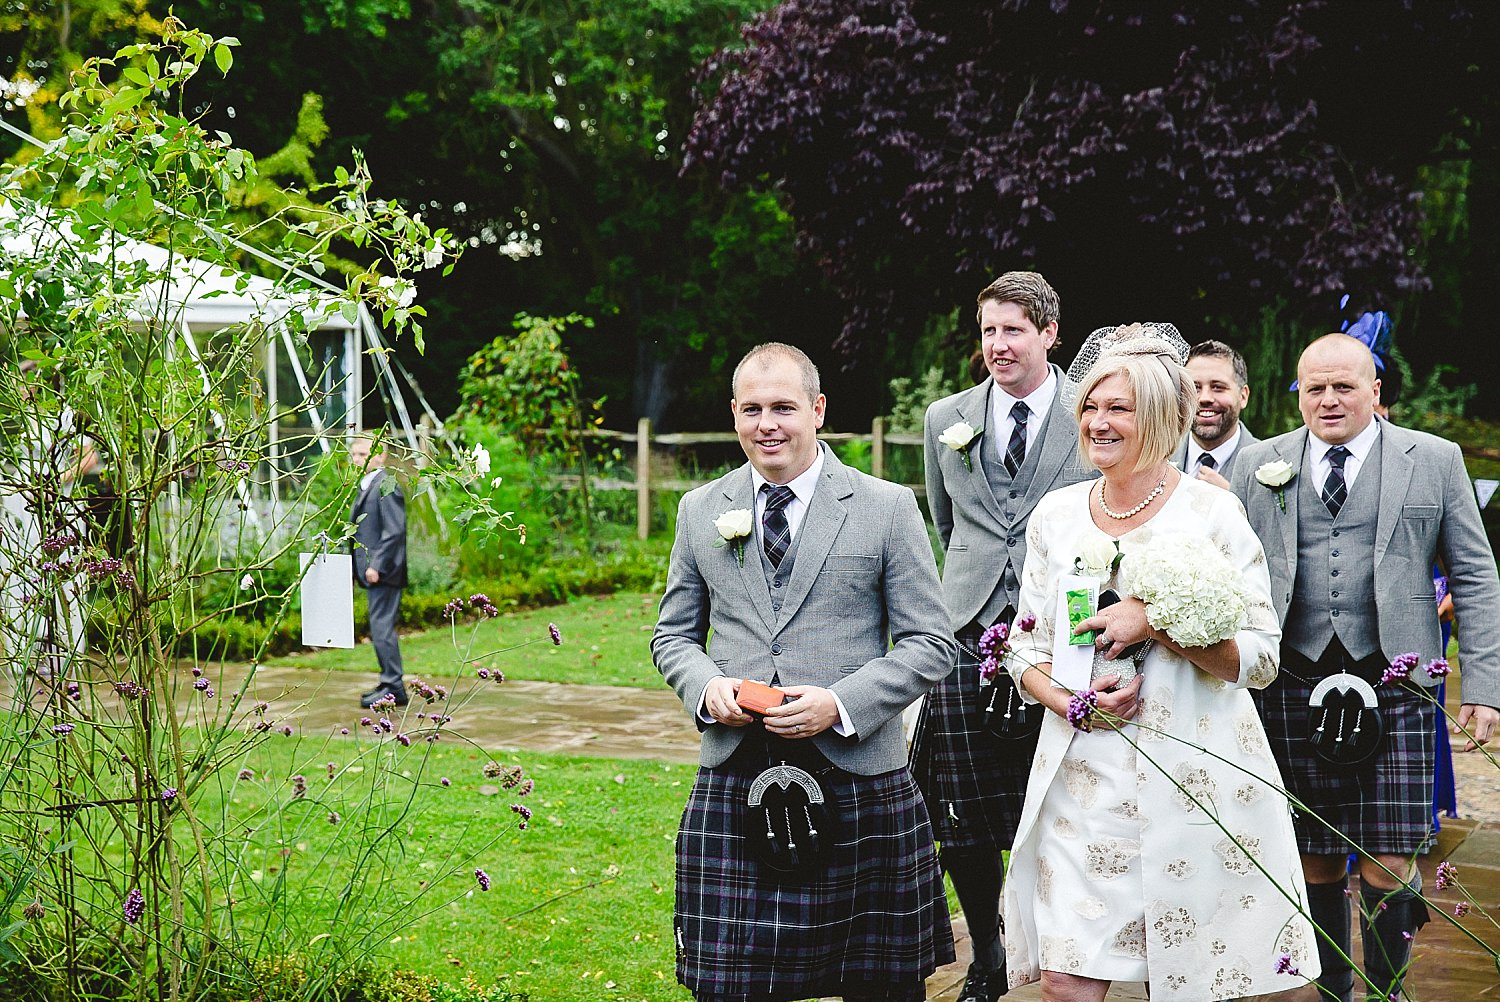 Houchins Essex Wedding - UK Documentary Photographer